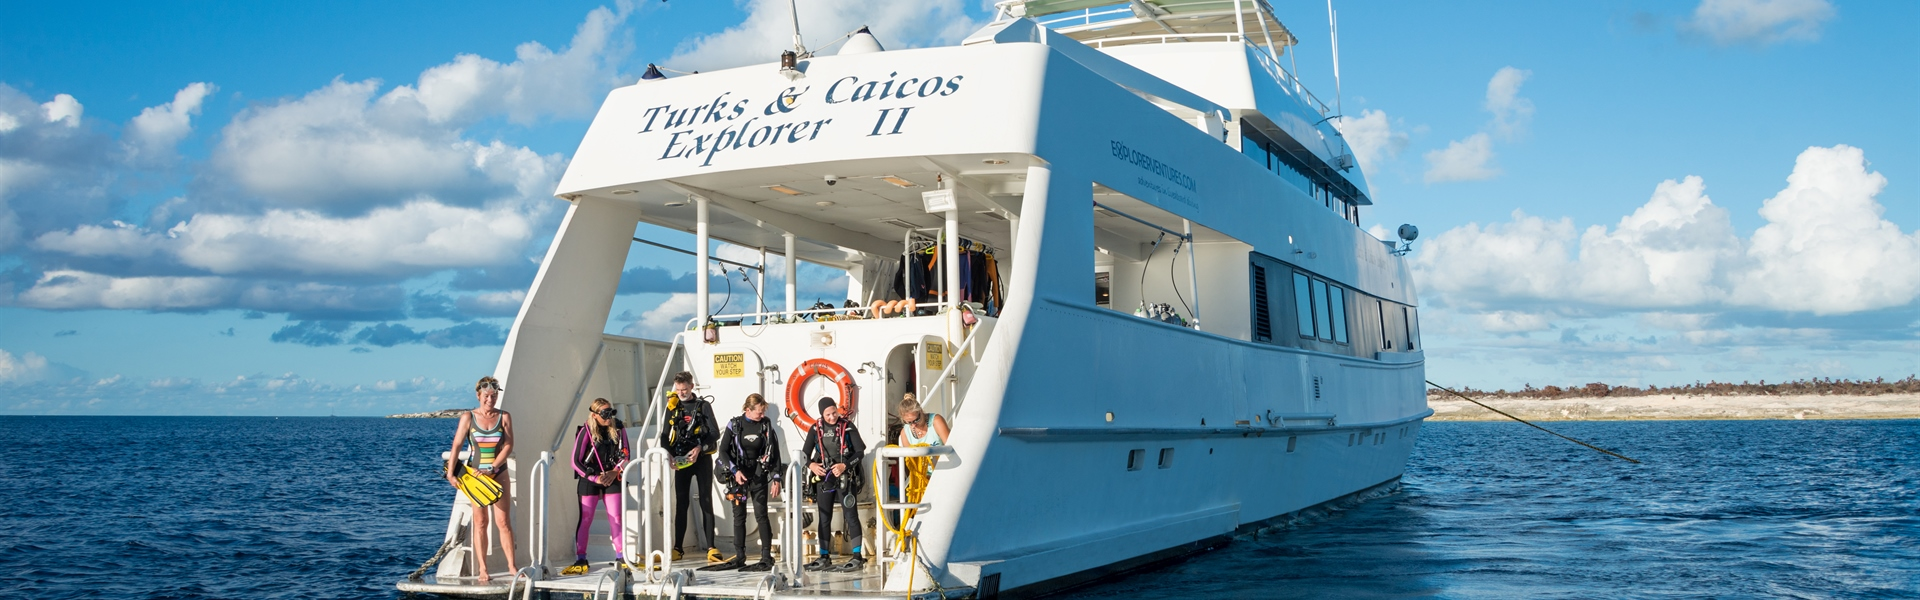 Turks and Caicos Explorer II stern